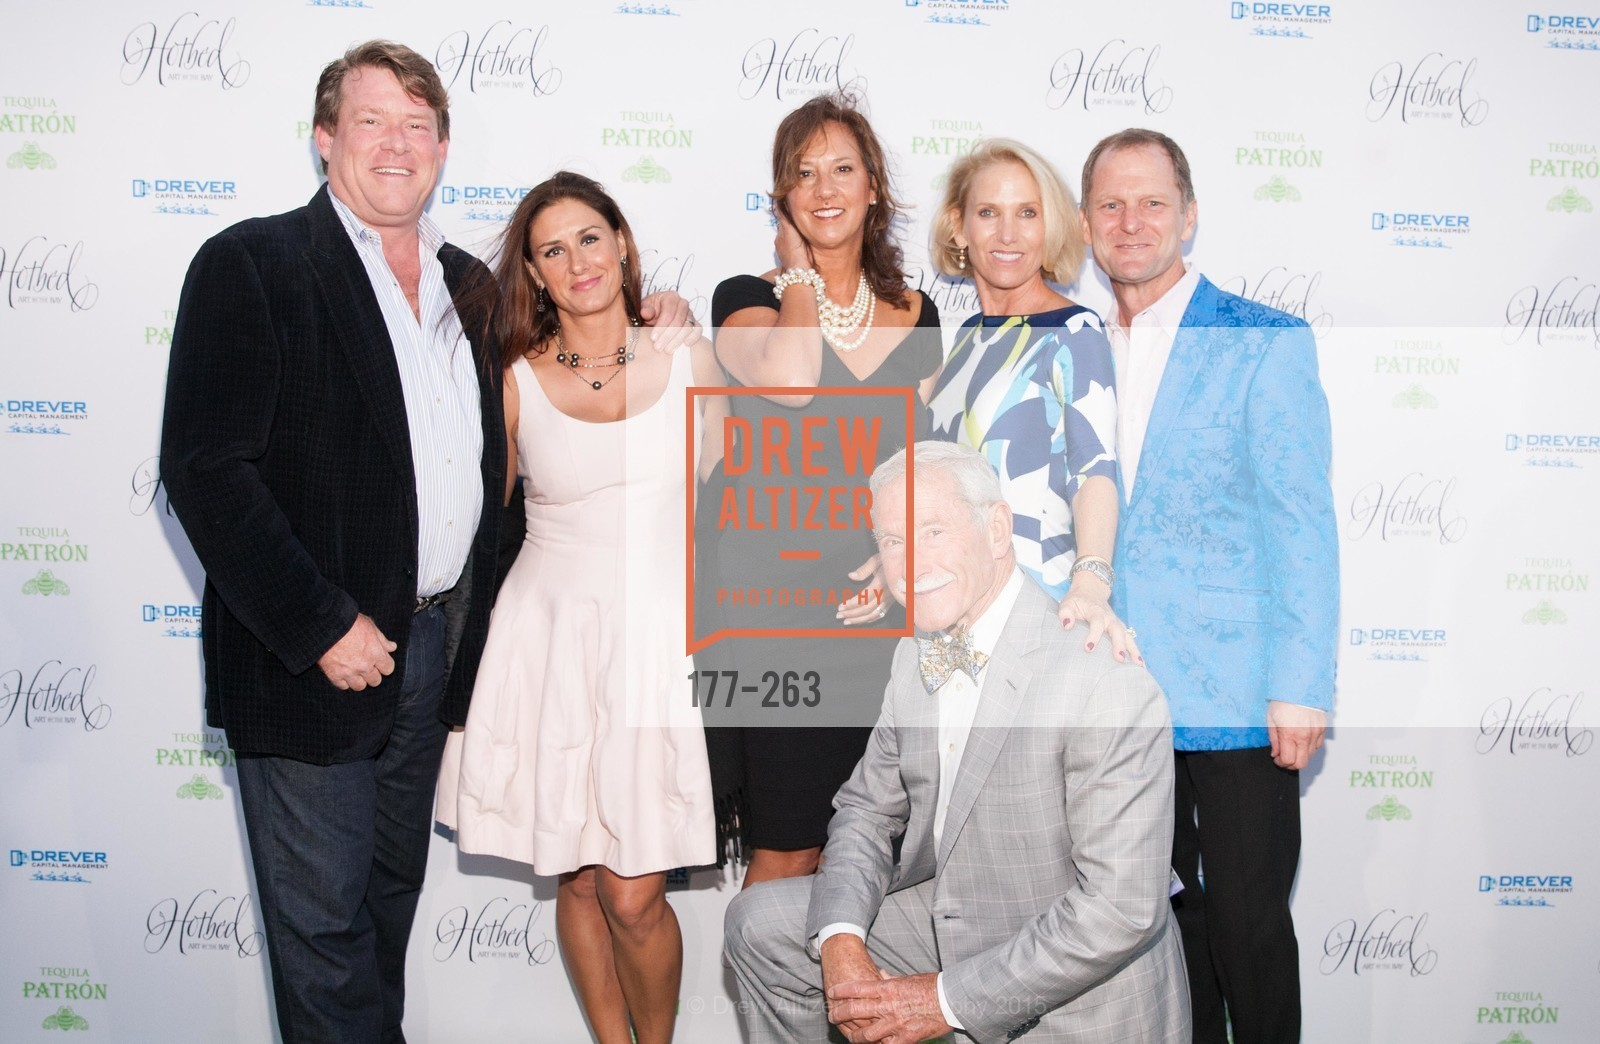 Britt Doyle, Ana Barretto, Maxwell Drever. Katie Benson, Charlie Kieser, Drever Family Foundation Presents The 2015 Hotbed Benefit, Private, August 22nd, 2015,Drew Altizer, Drew Altizer Photography, full-service agency, private events, San Francisco photographer, photographer california